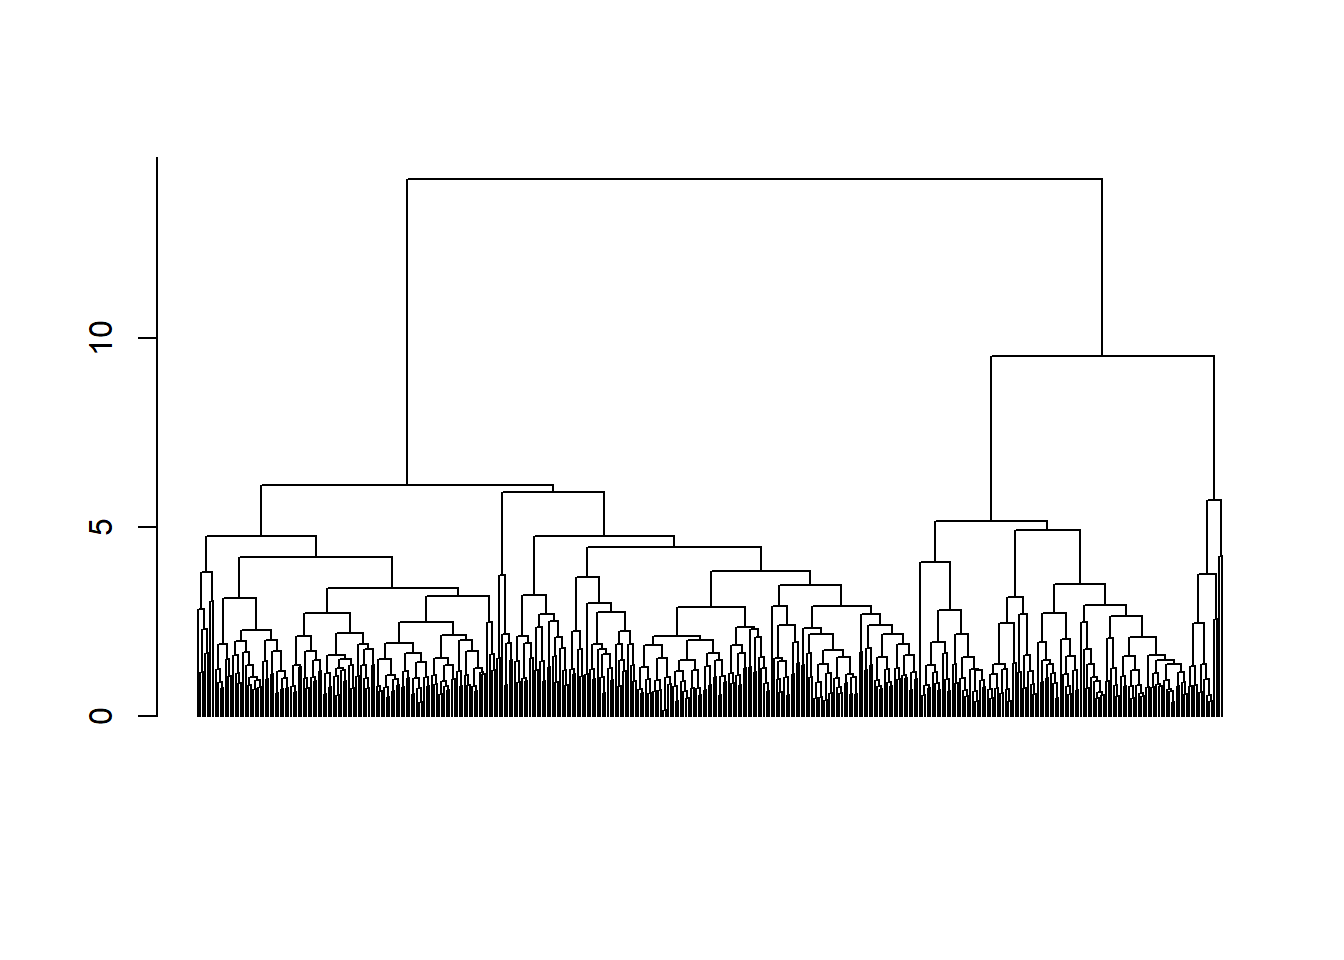 Hierarchical Clustering, Euclid Distance